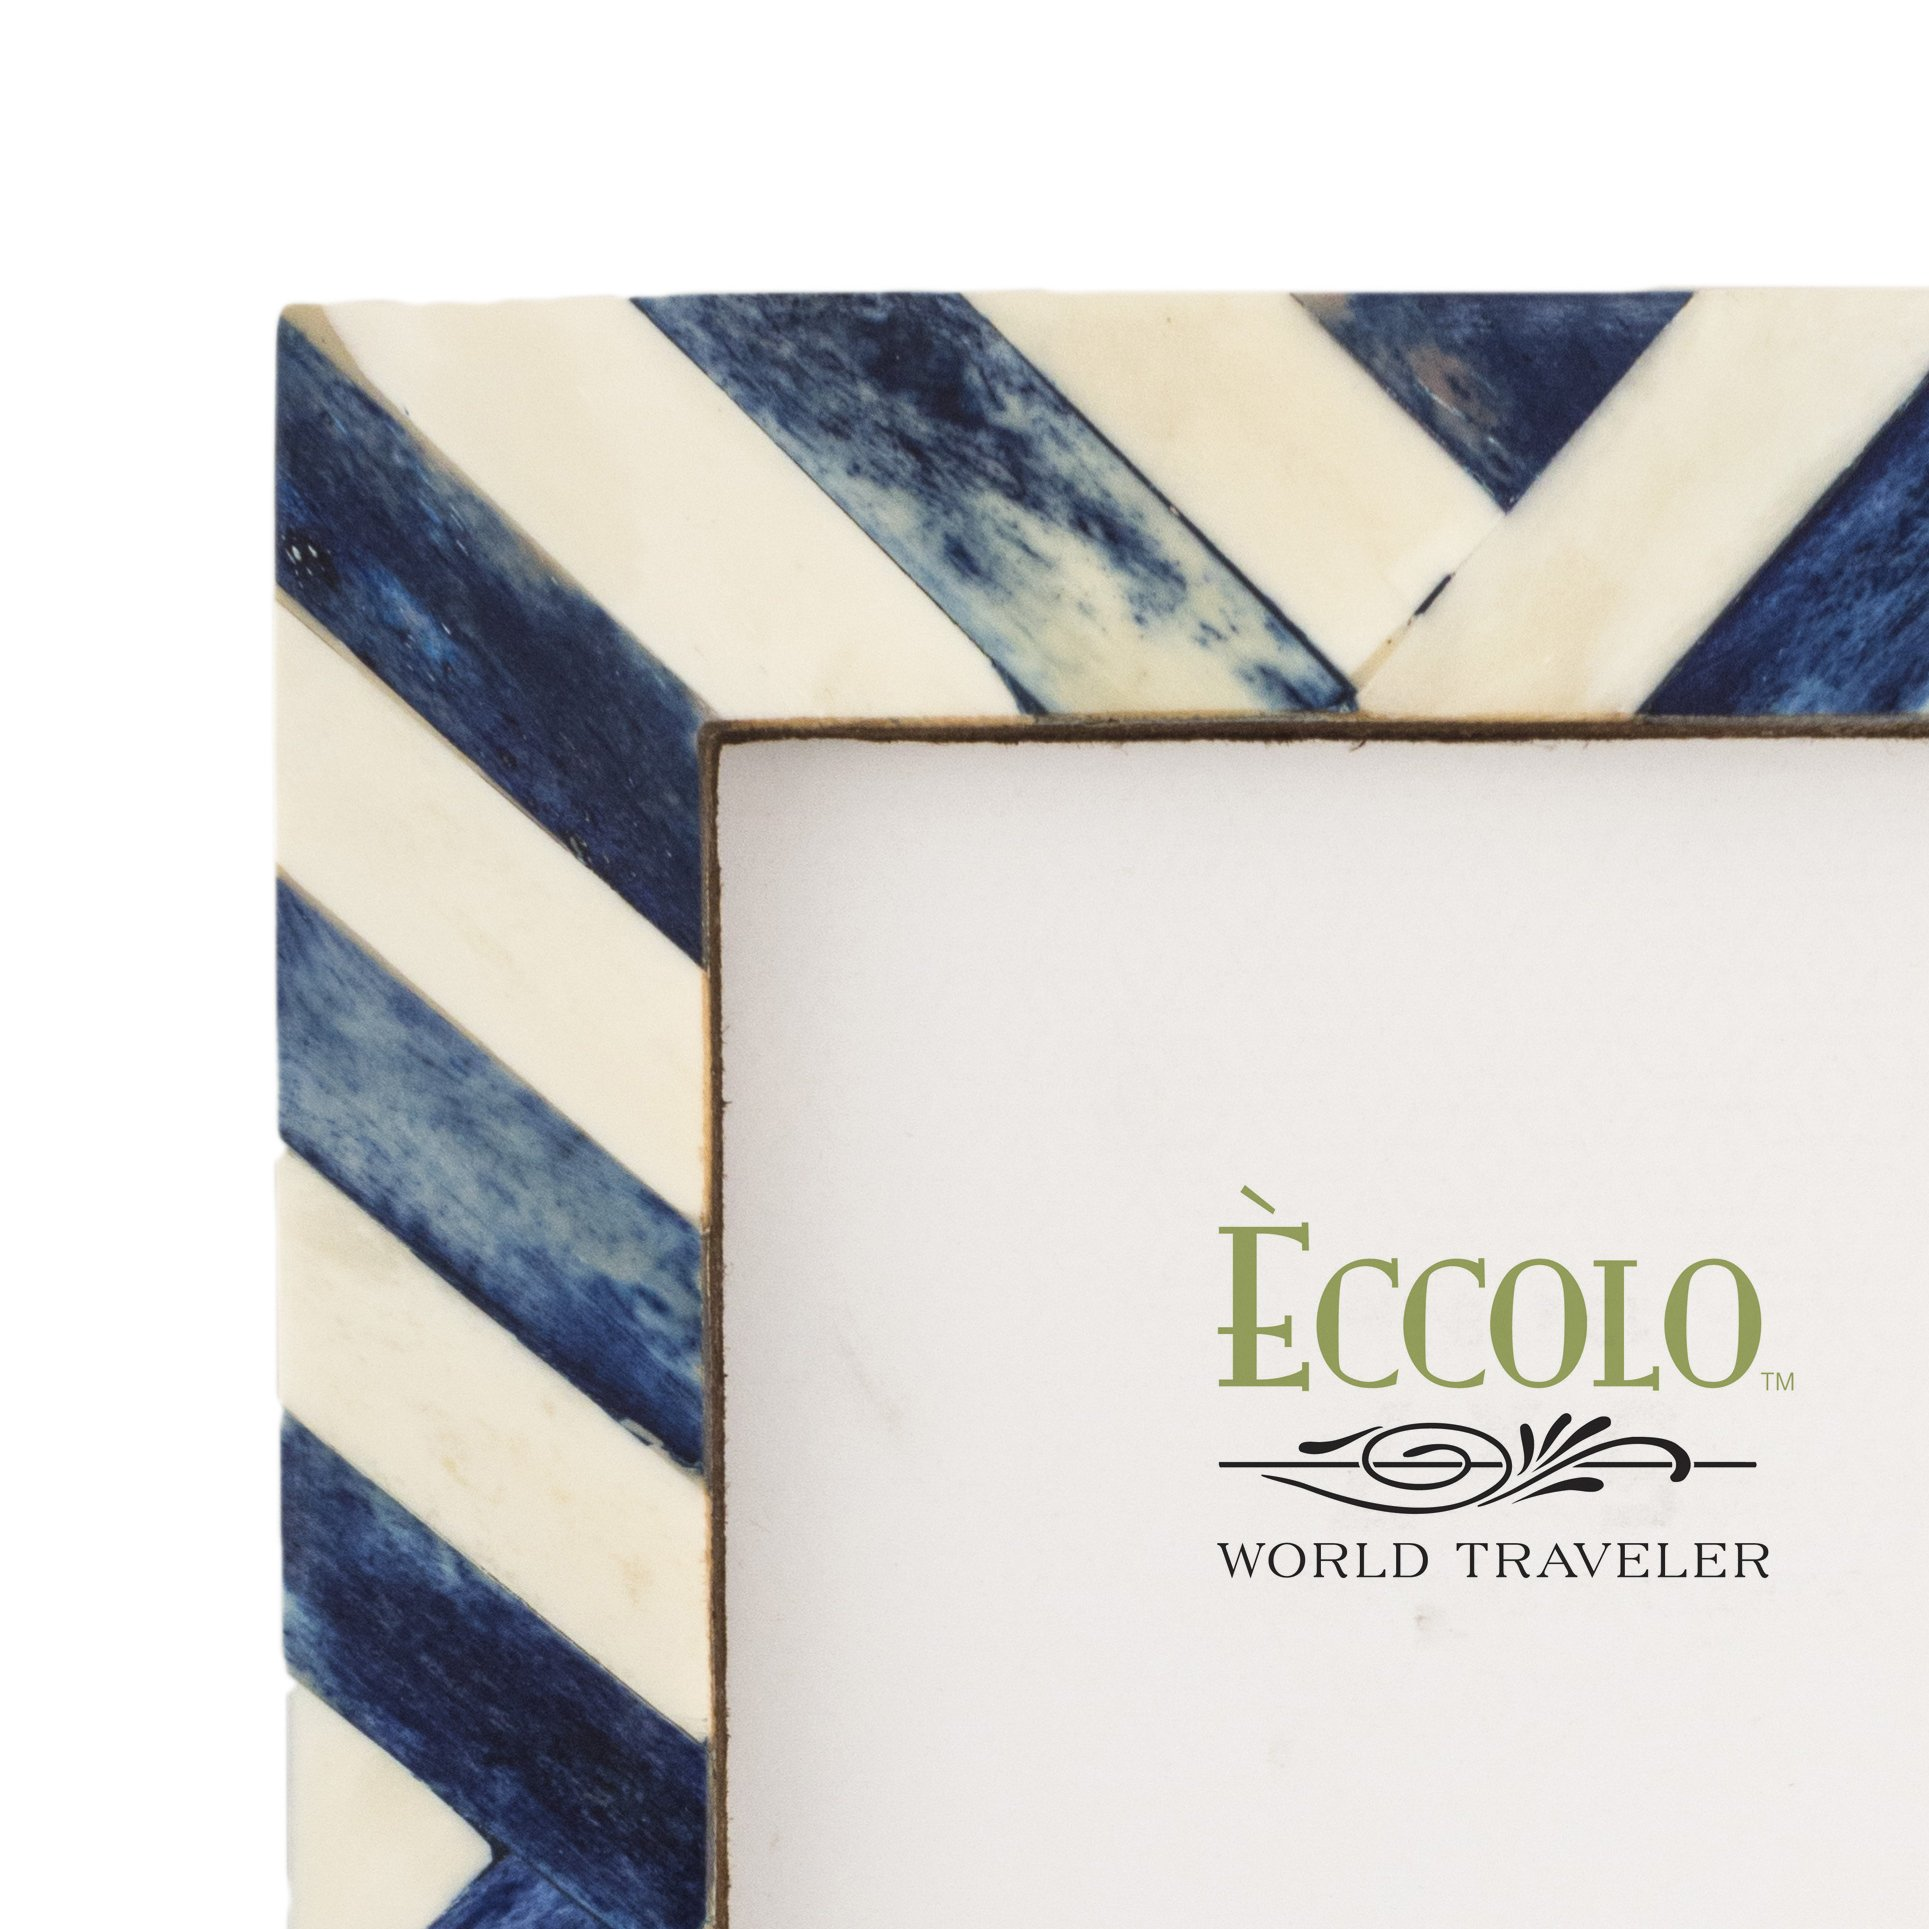 Eccolo Naturals Frame, 5 by 7-Inch, Angled Stripes Blue by Eccolo